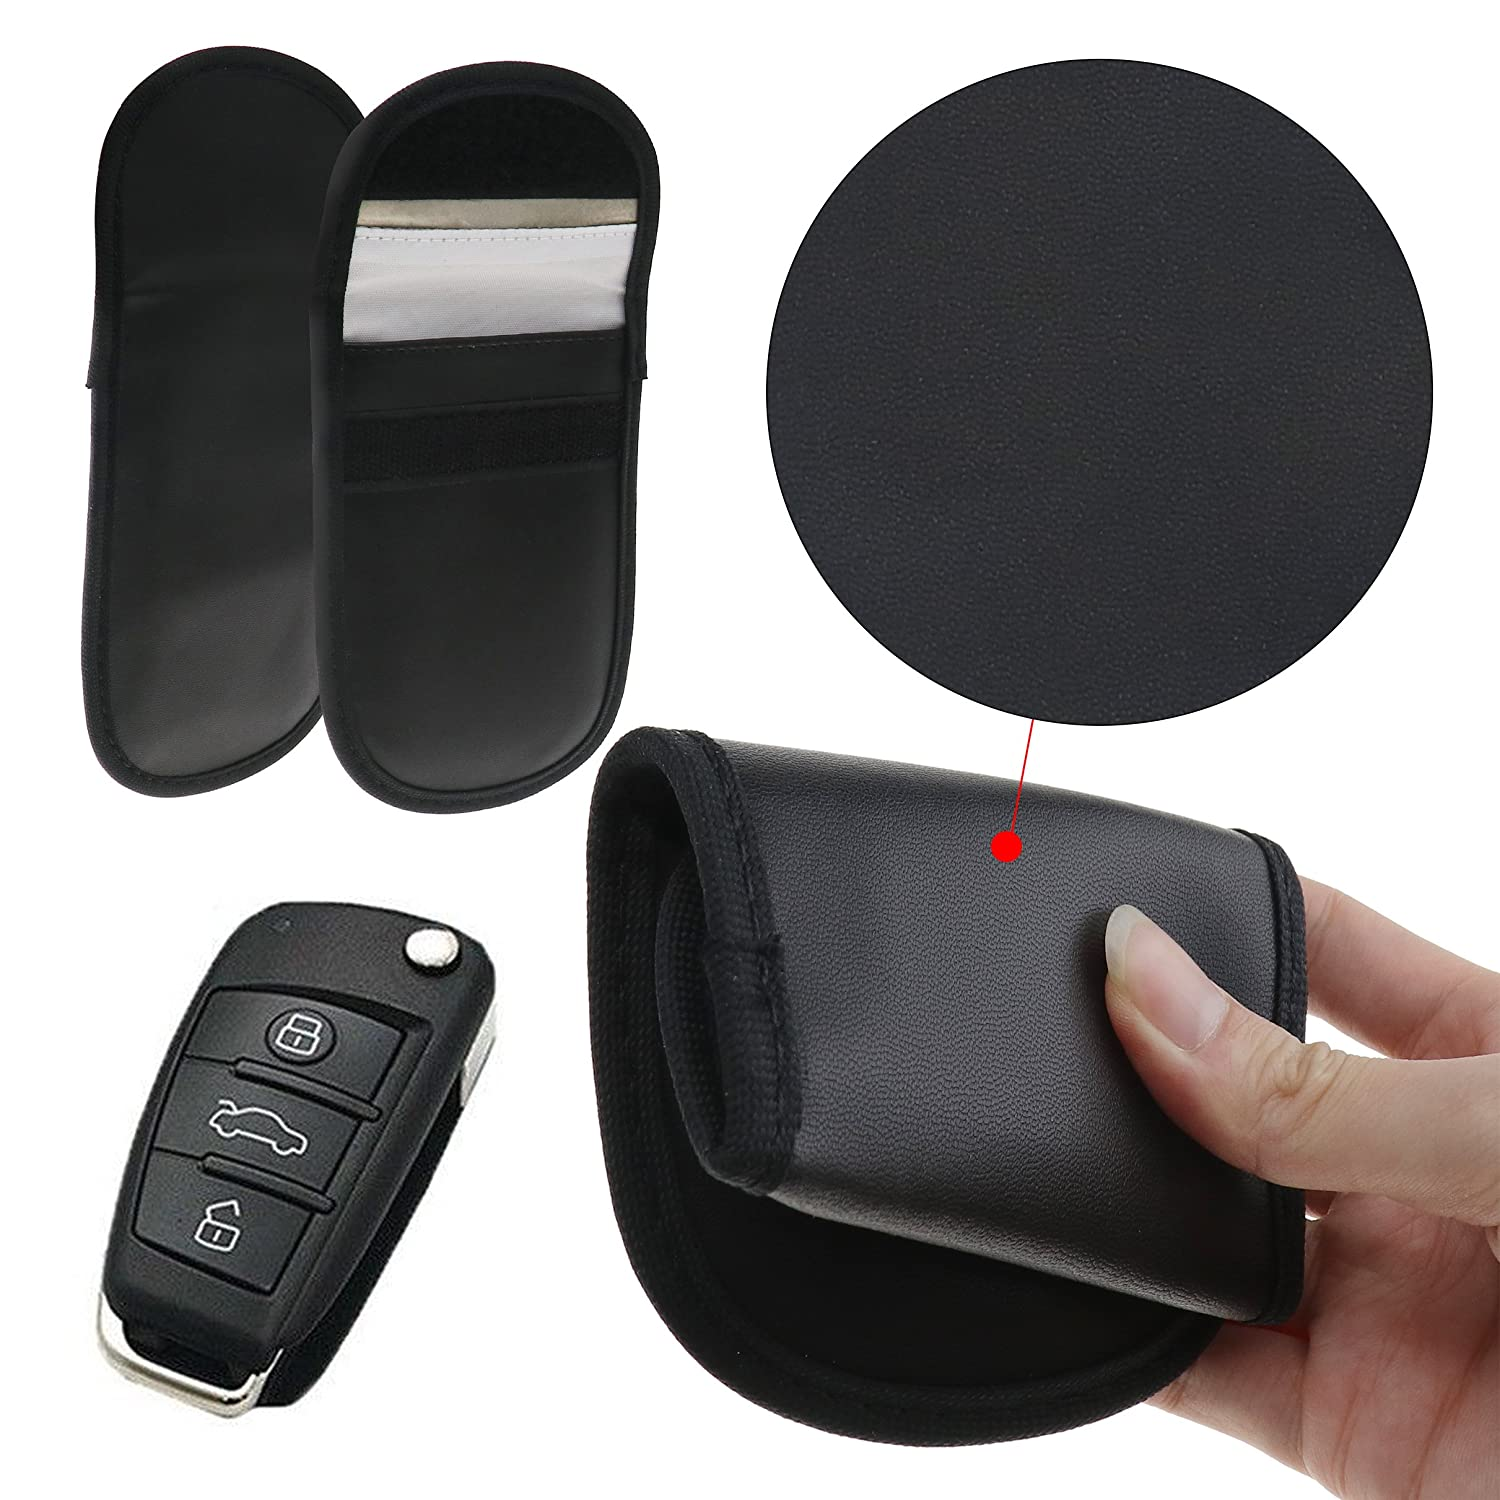 Micro Trader 2x RFID Signal Blocker Pouch Car Keyless Entry Key Signal Blocker Case Bag